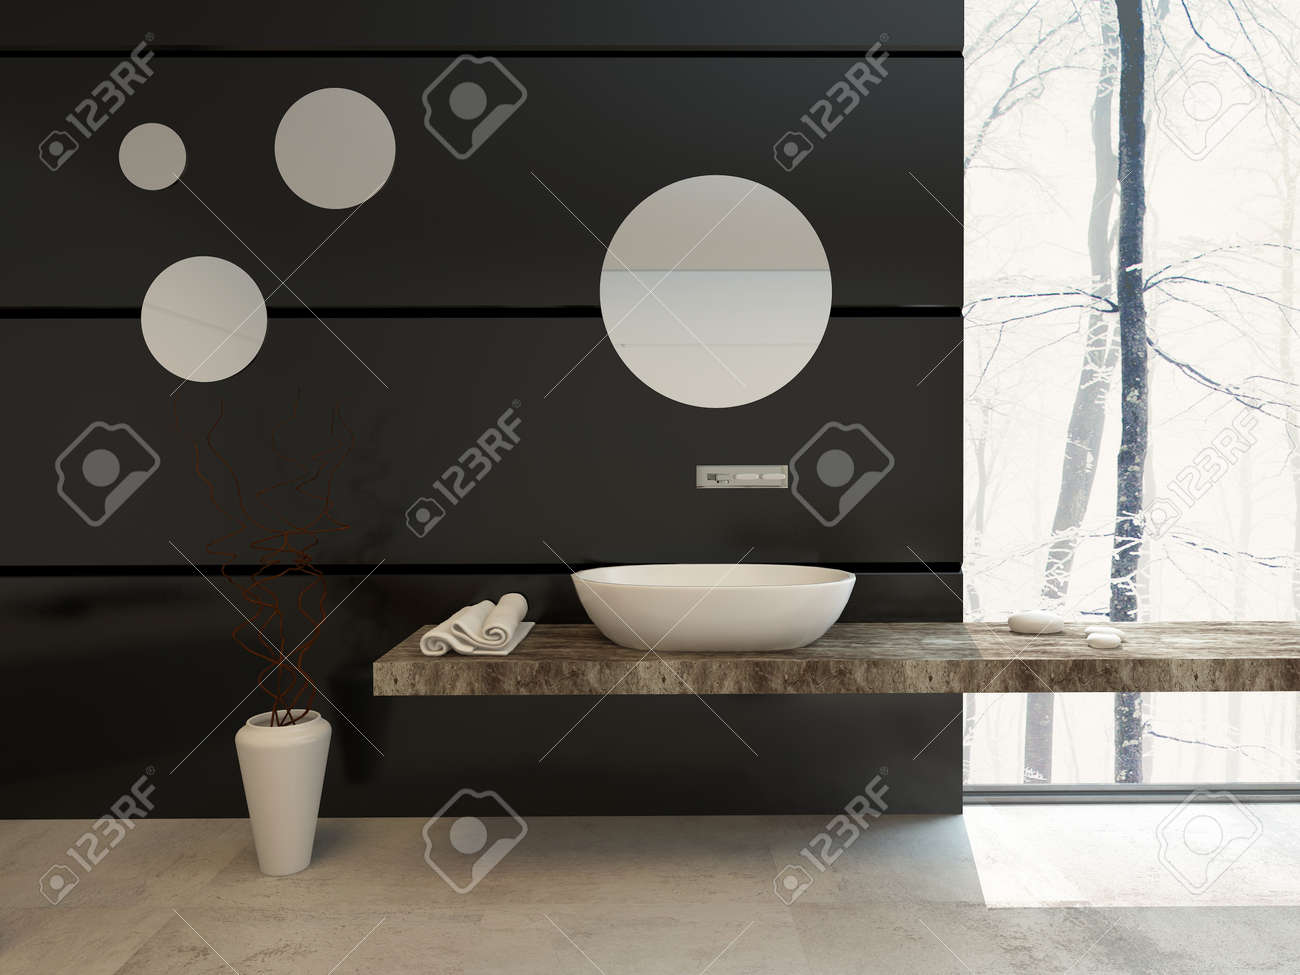 modern bathroom decor on a black wall with a wall-mounted hand